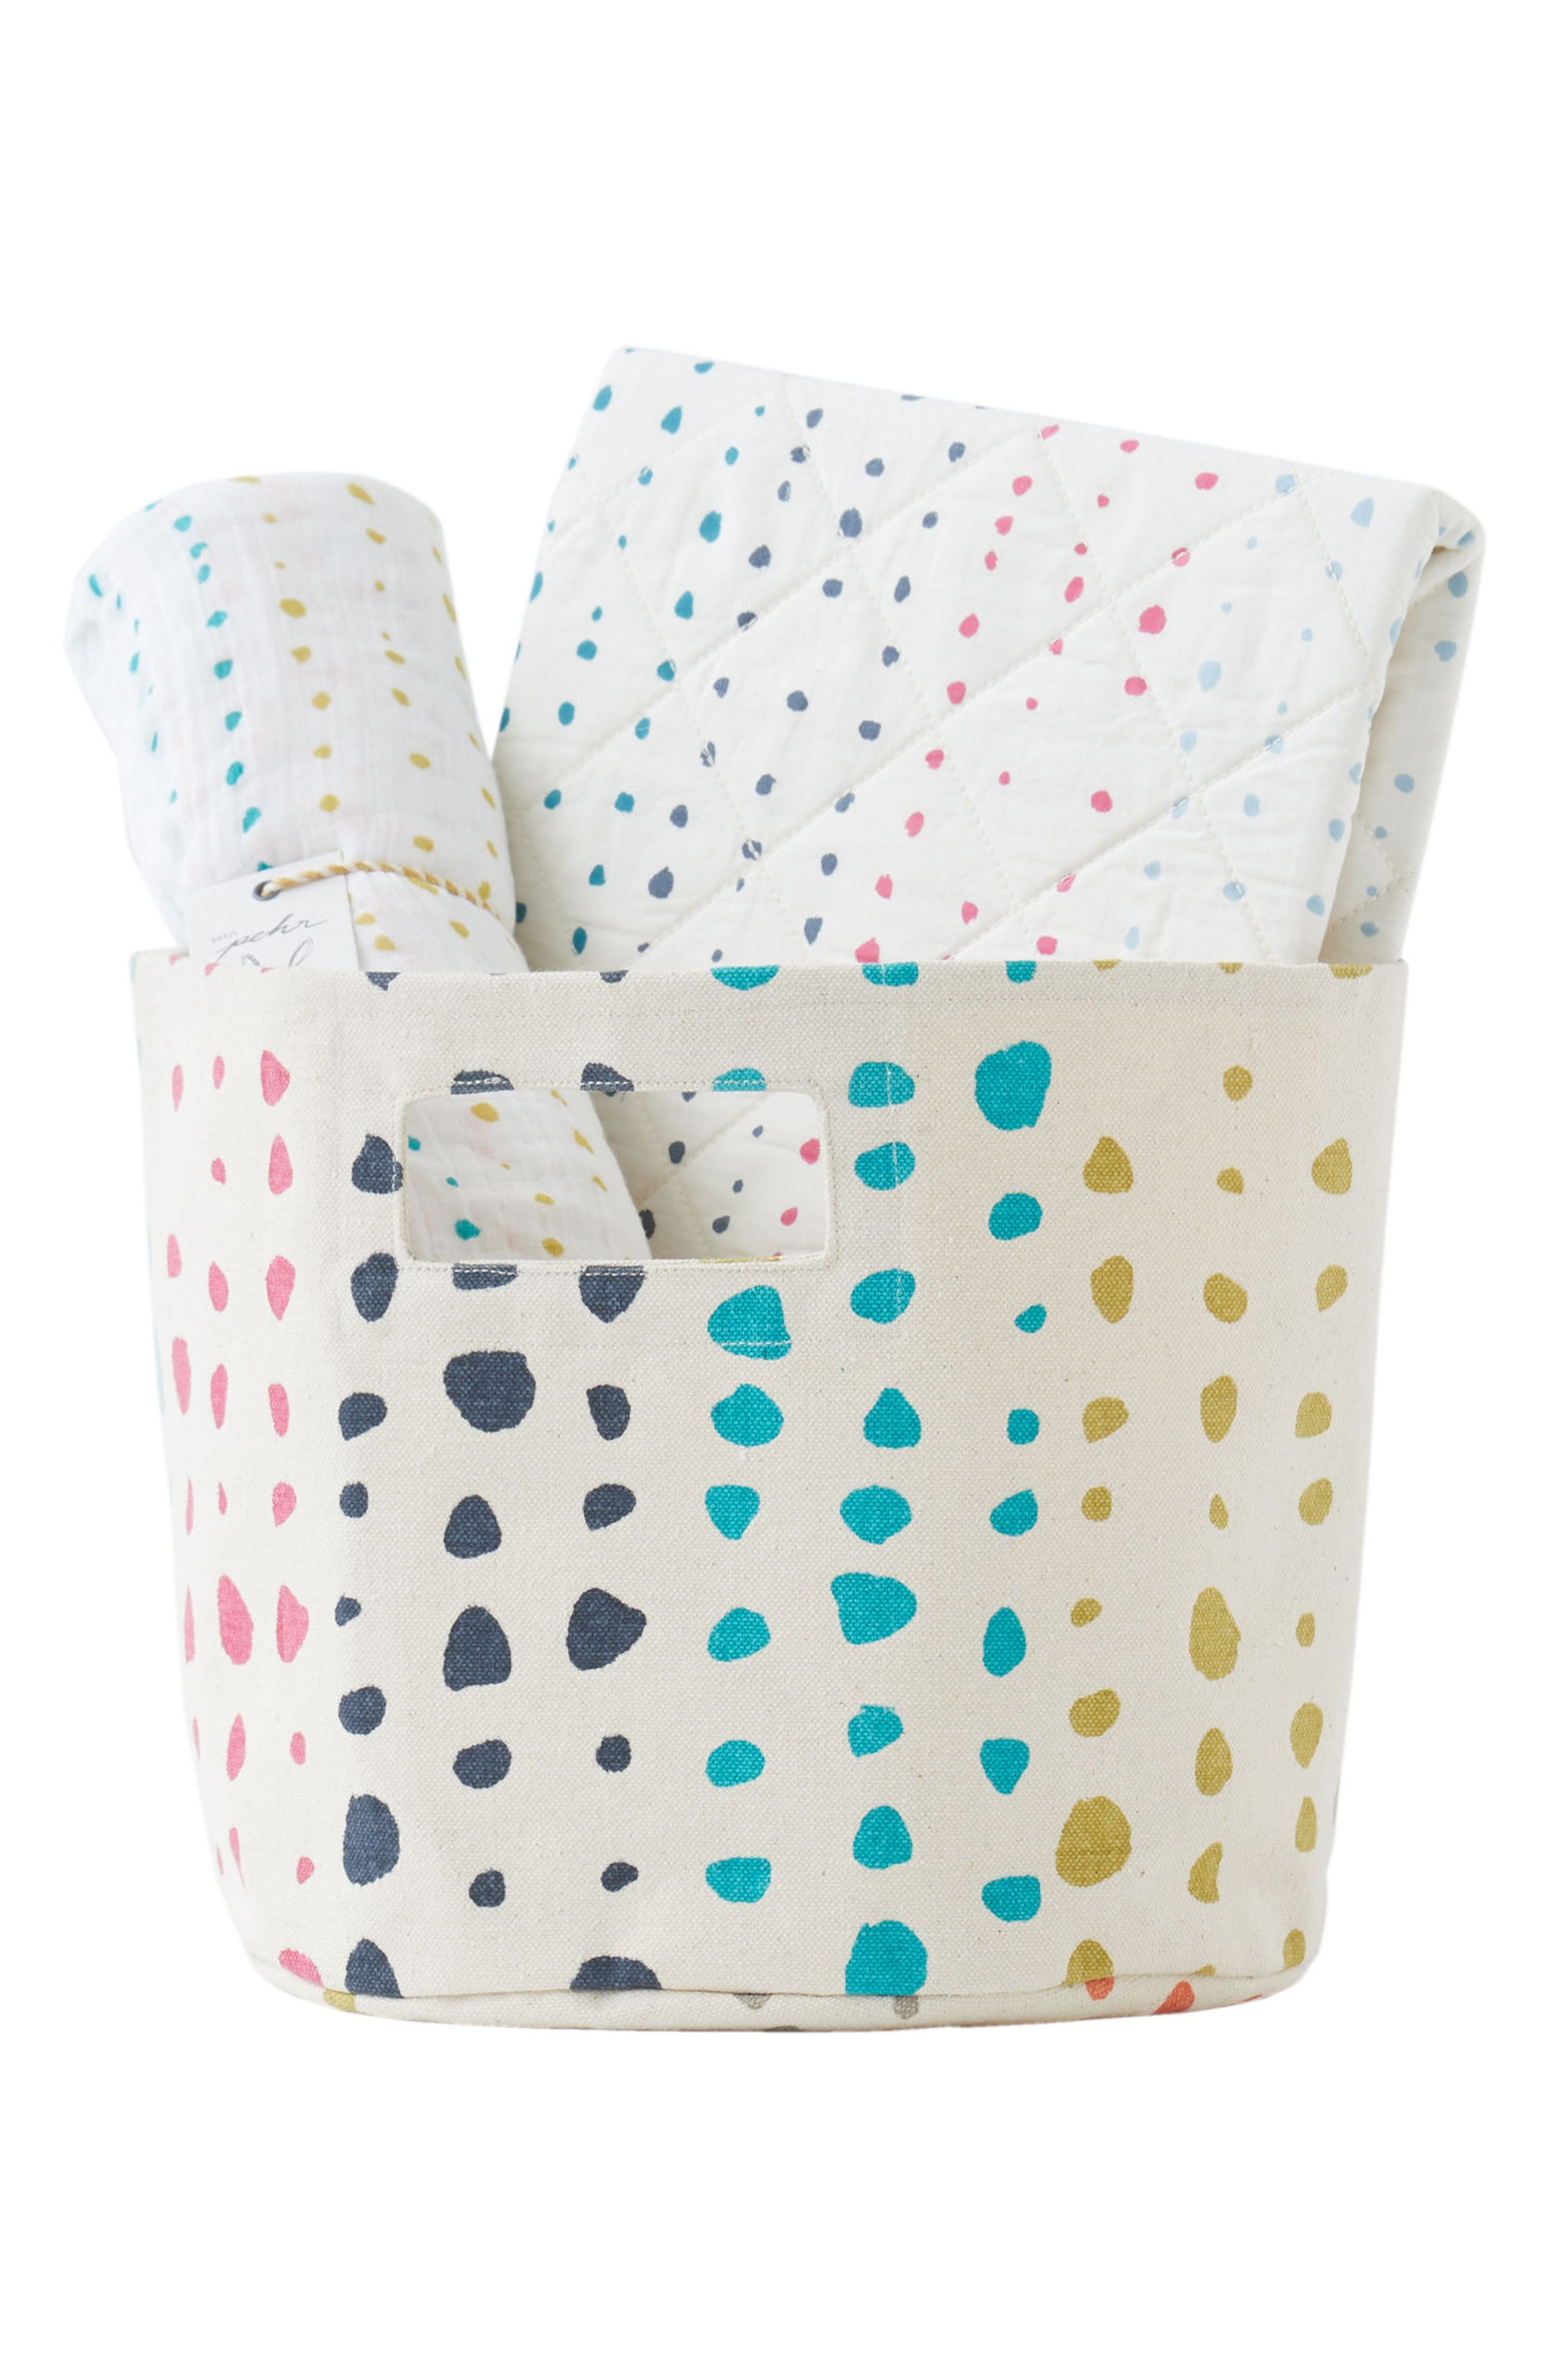 Main Image - Petit Pehr Painted Dots Changing Pad Cover, Swaddle & Bin Set